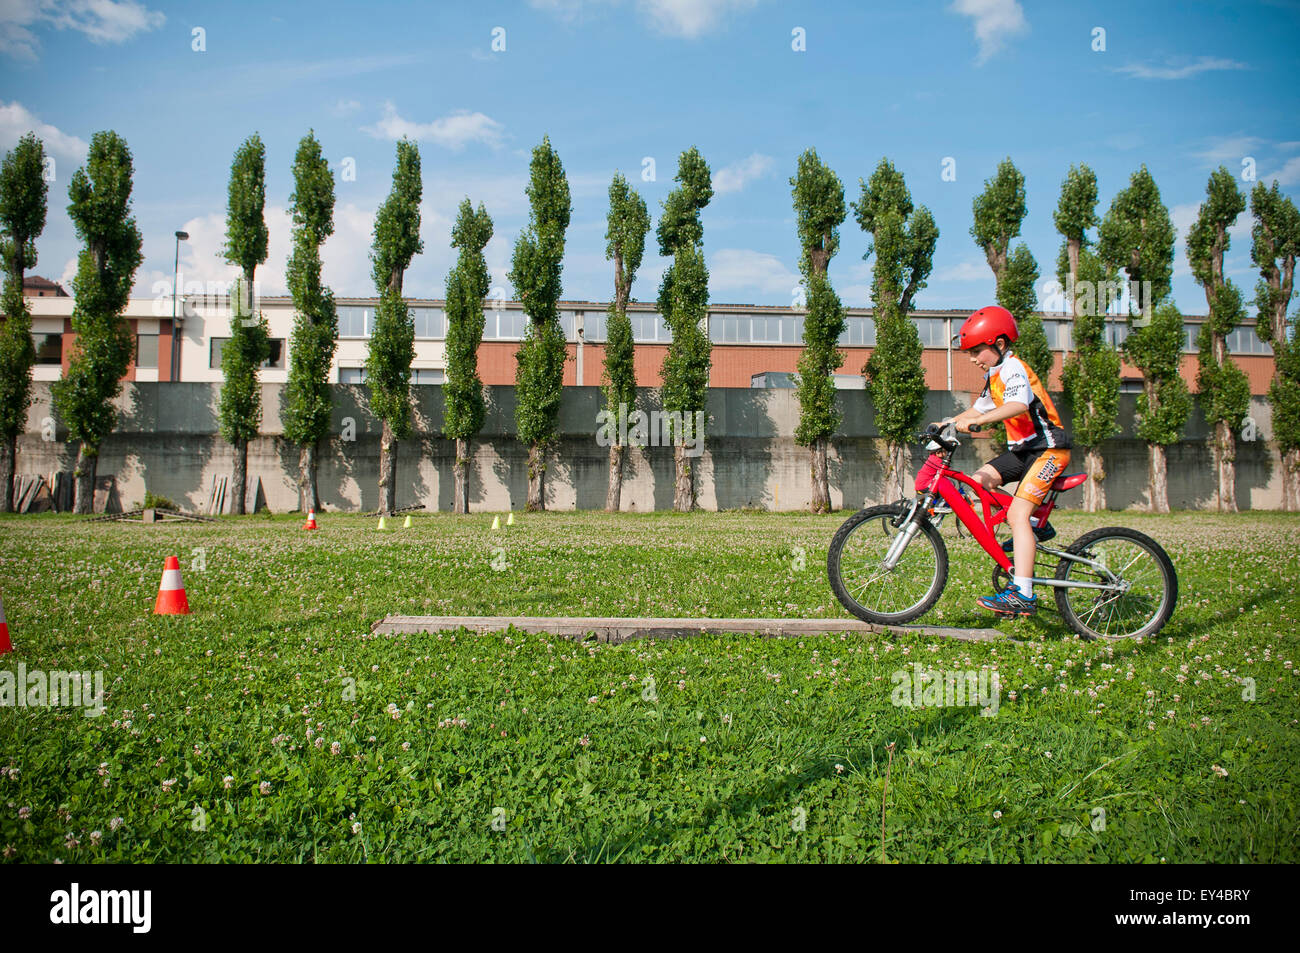 Boy Riding Mountain-Bike durch Hindernis-Parcours Stockbild